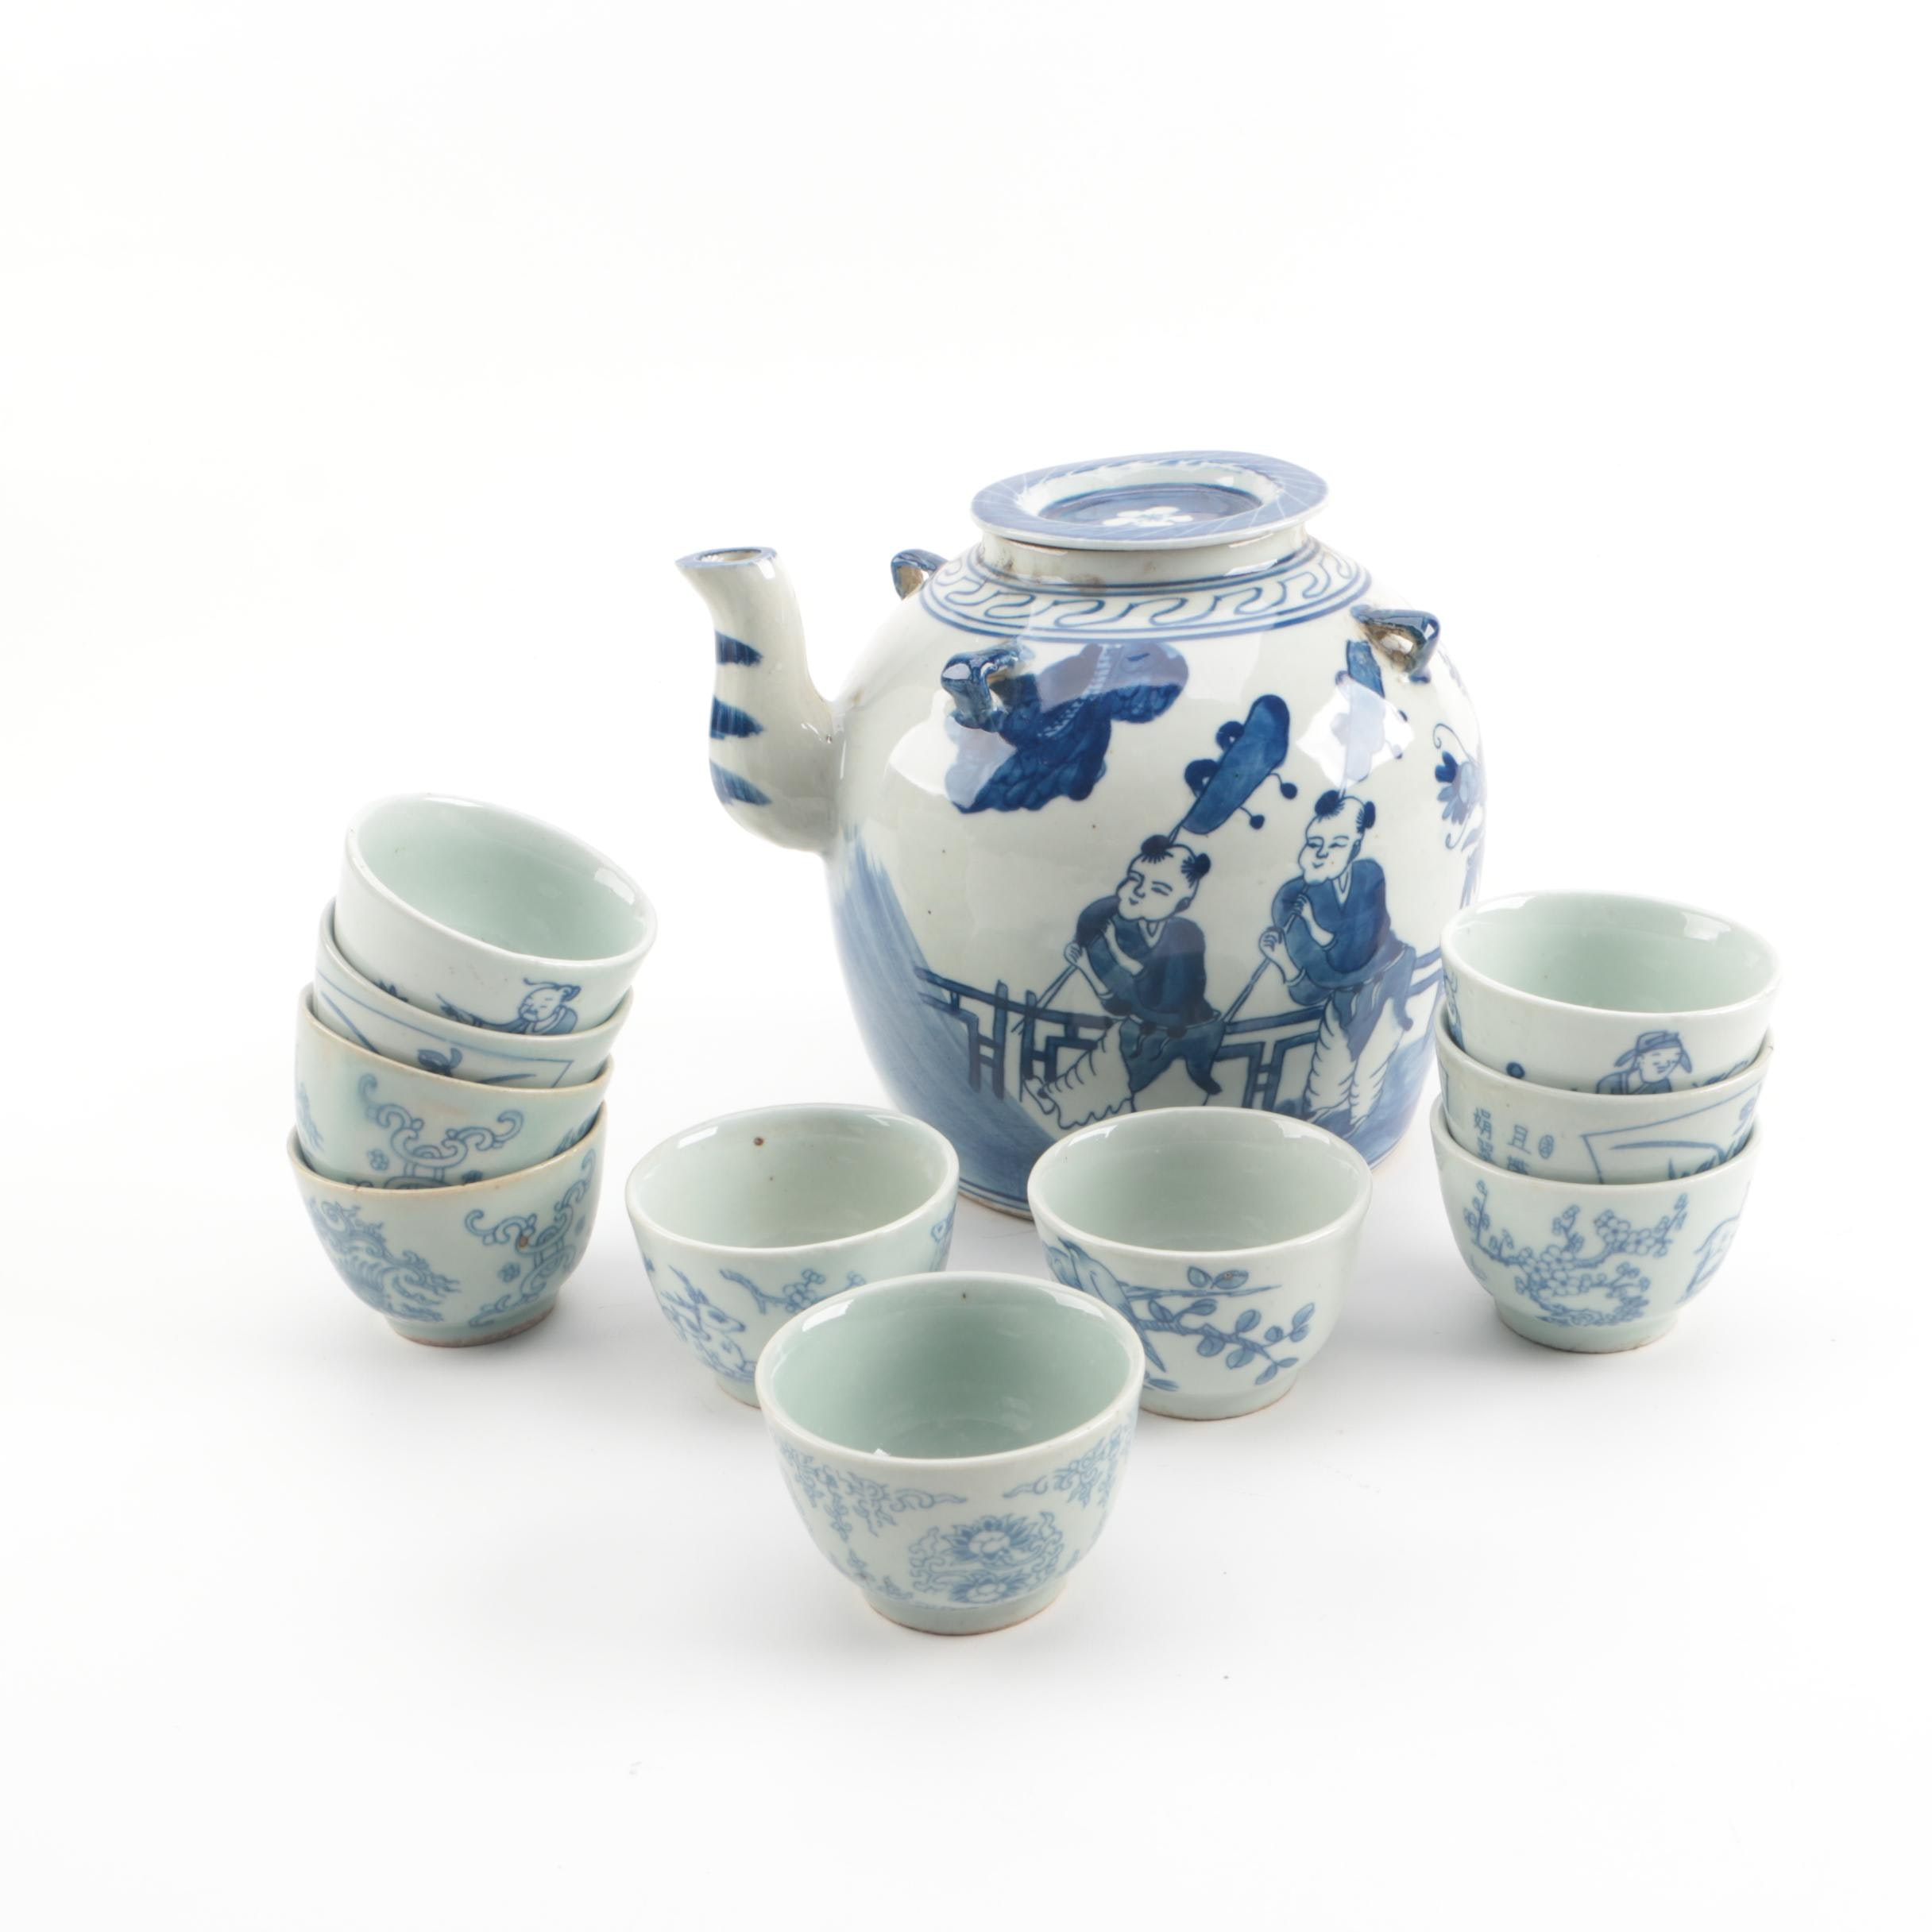 Chinese Republic Hand-Painted Porcelain Teapot with Footed Tea Cups